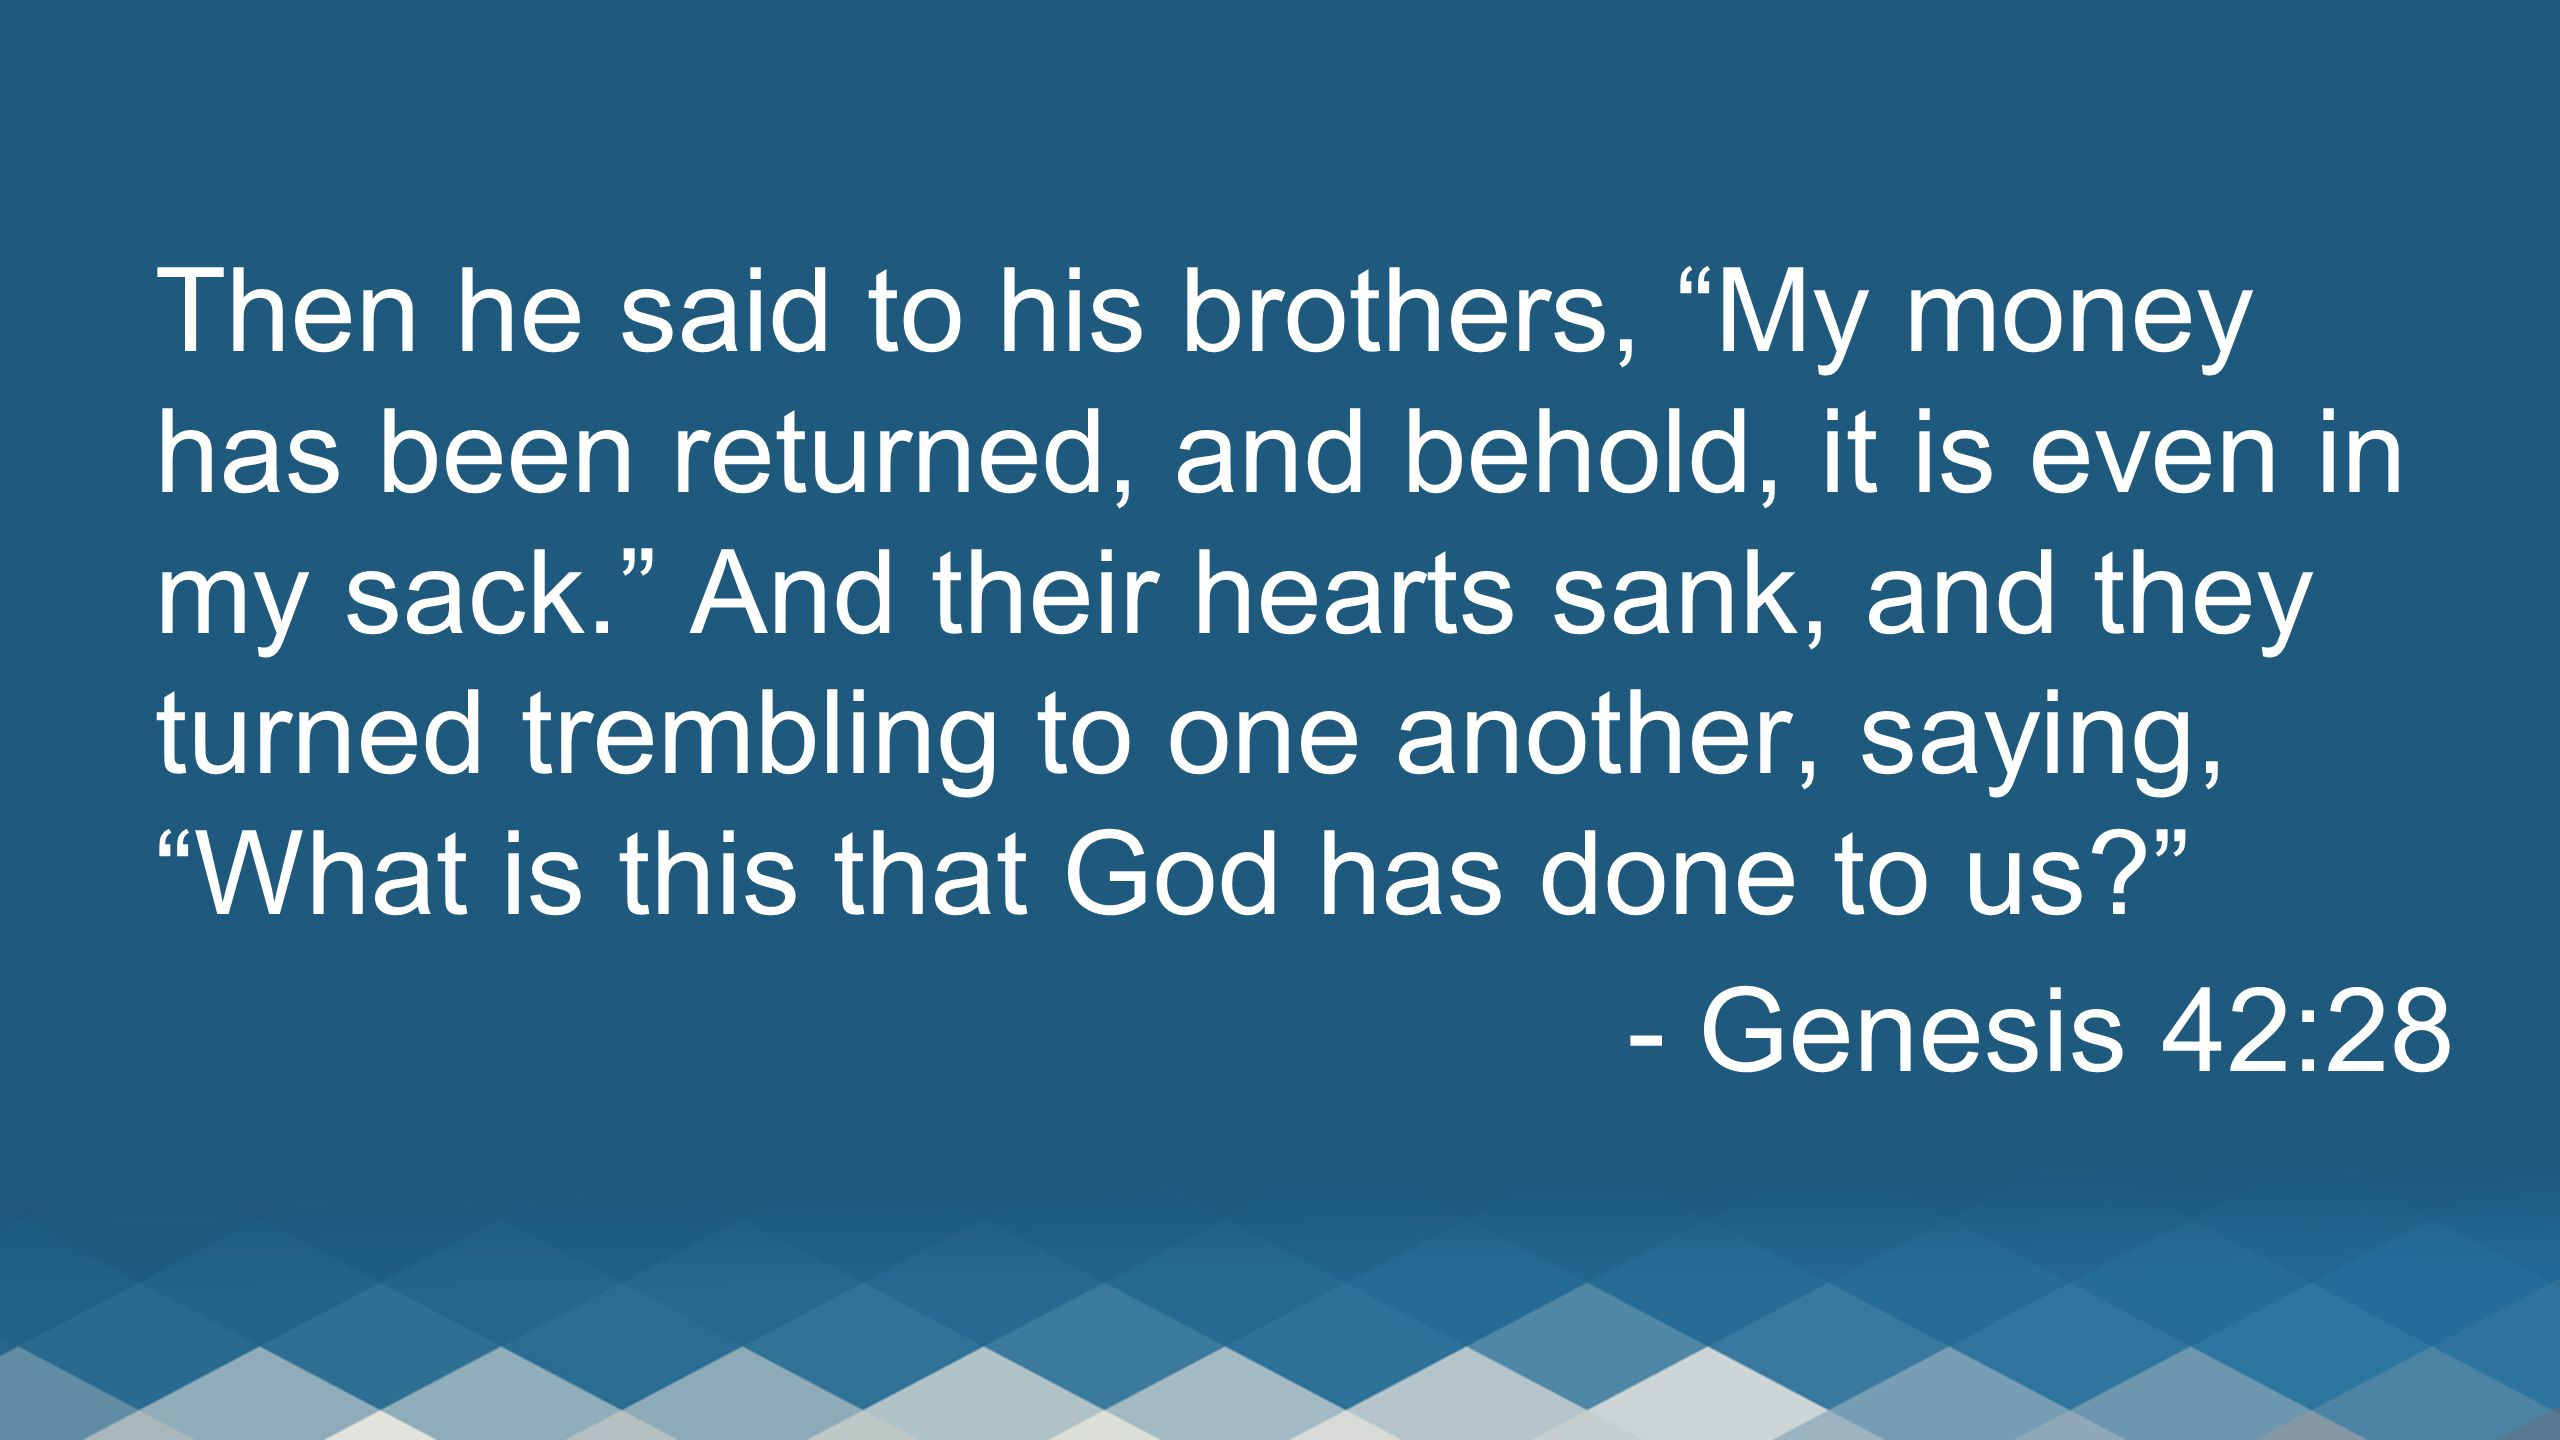 Then he said to his brothers, My money has been returned, and behold, it is even in my sack. And their hearts sank, and they turned trembling to one another, saying, What is this that God has done to us